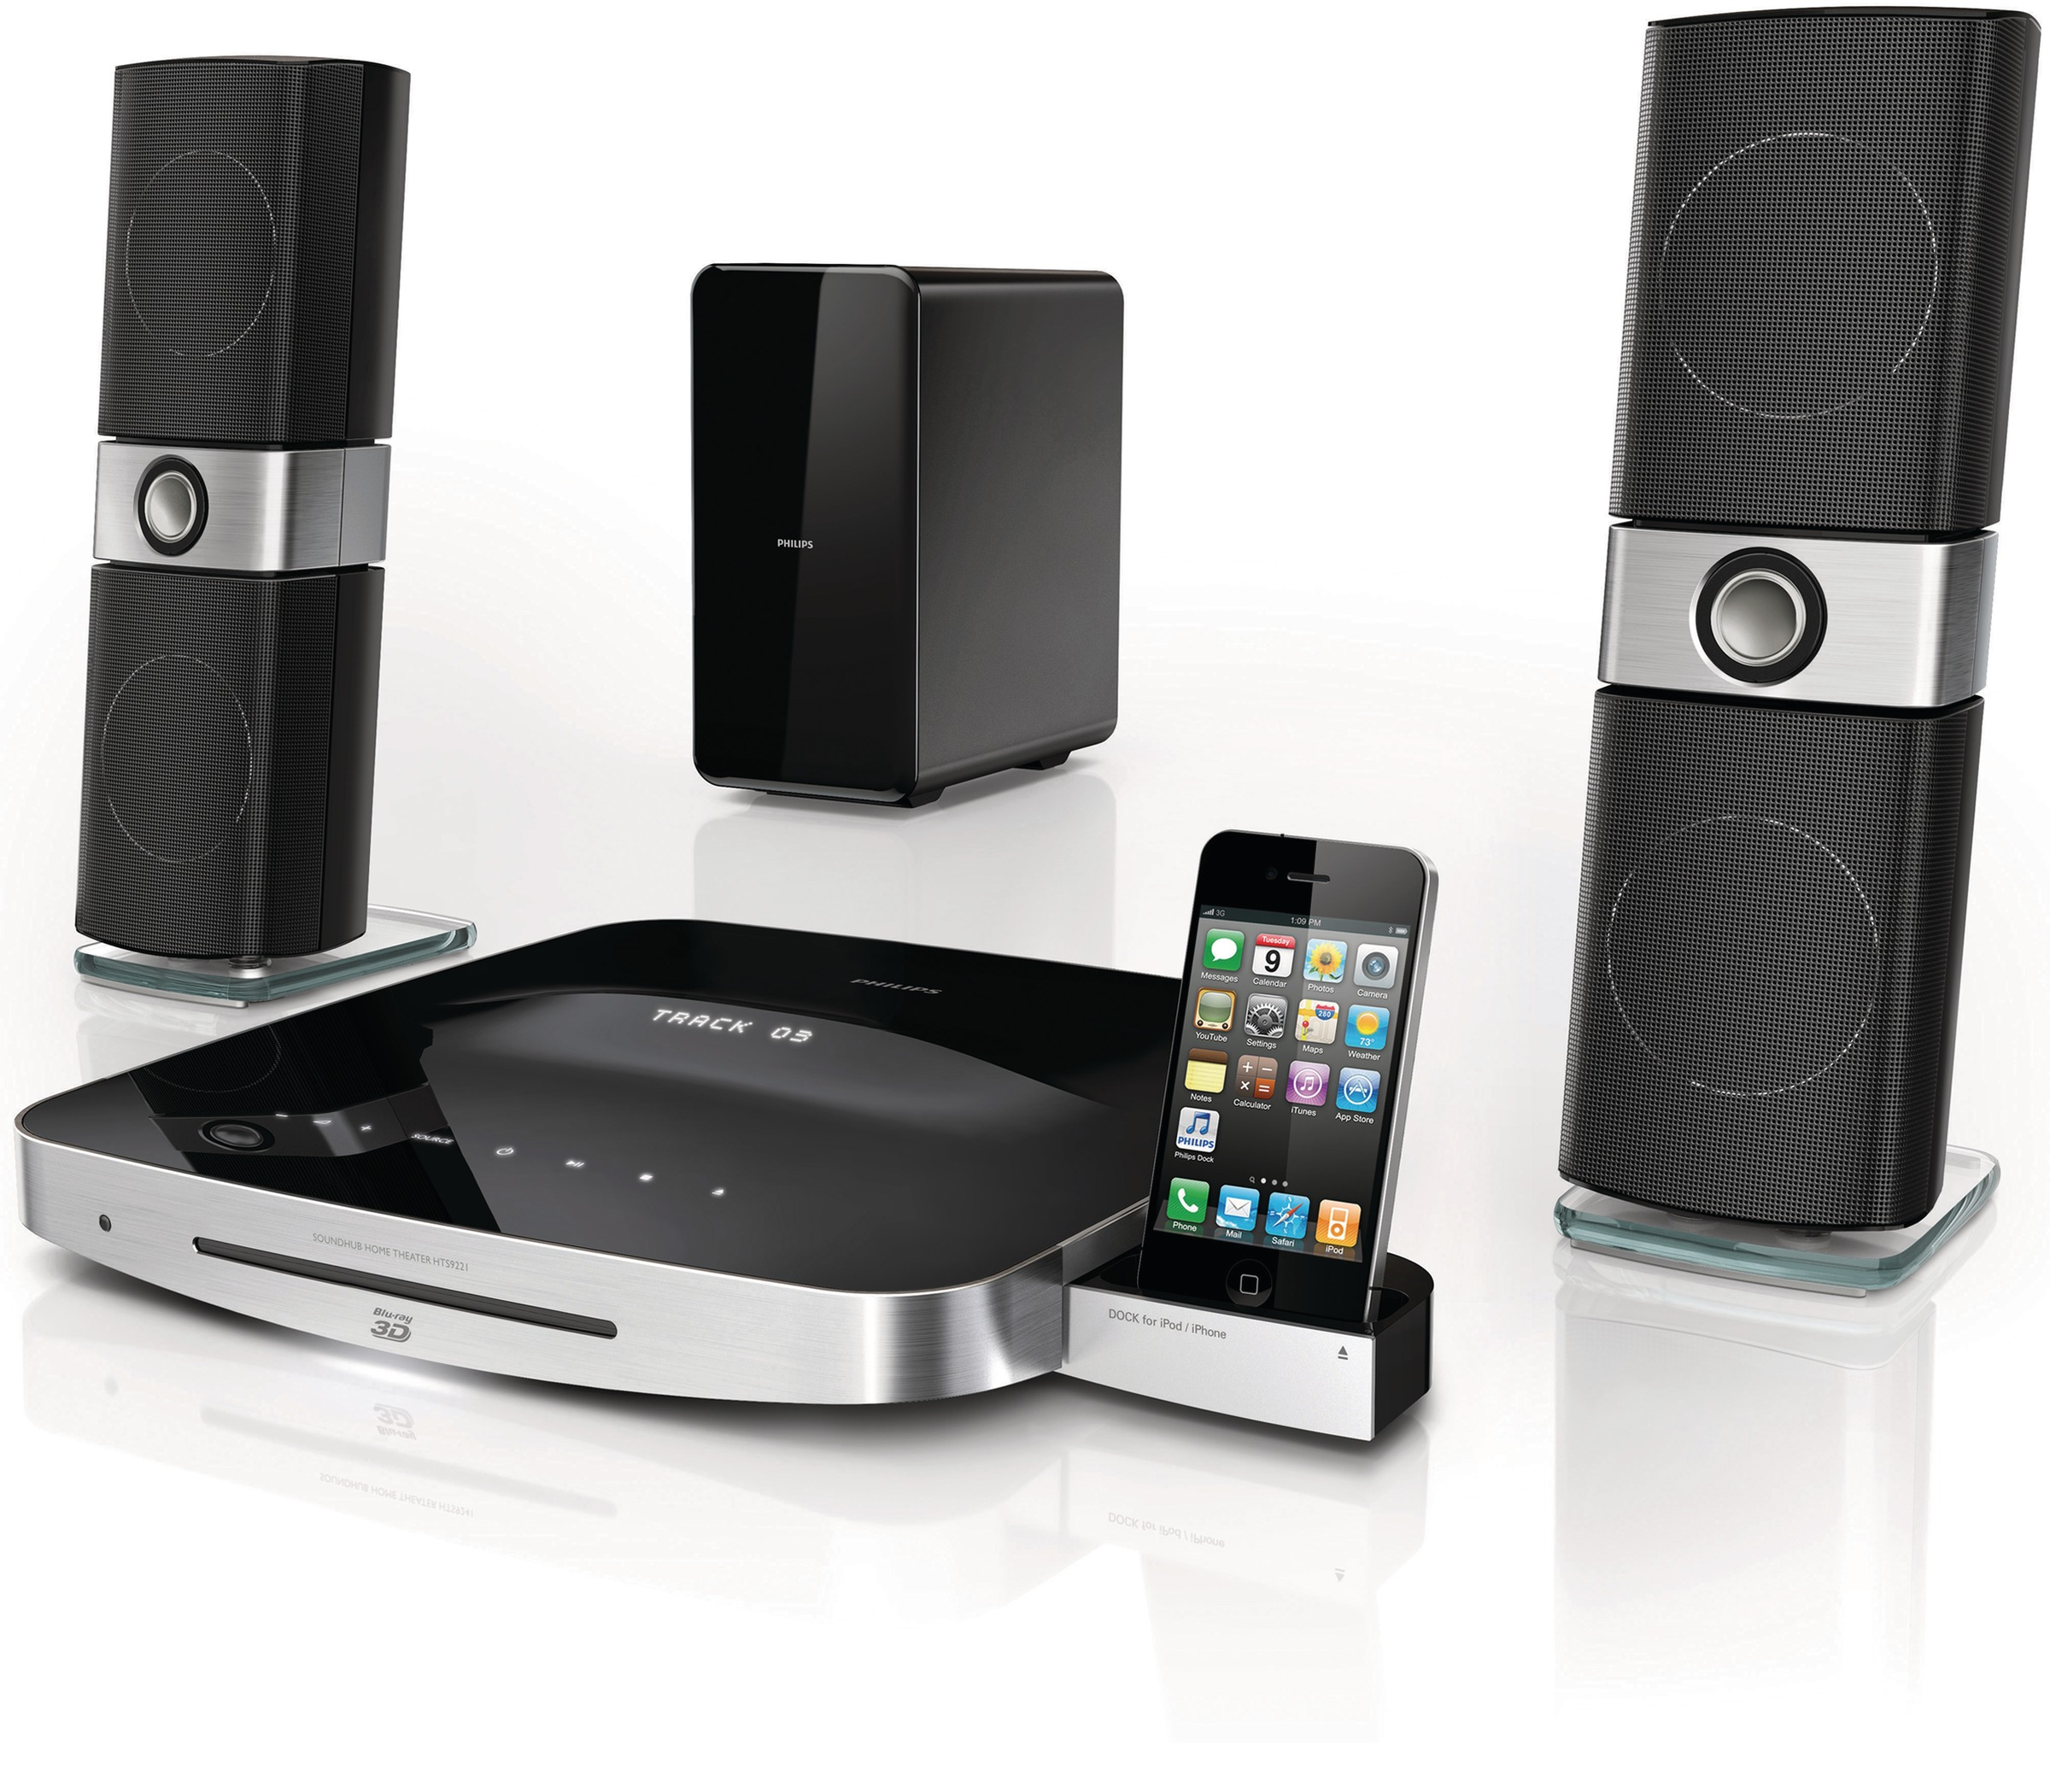 Philips HTS9221 product with iphone May 2011.jpg